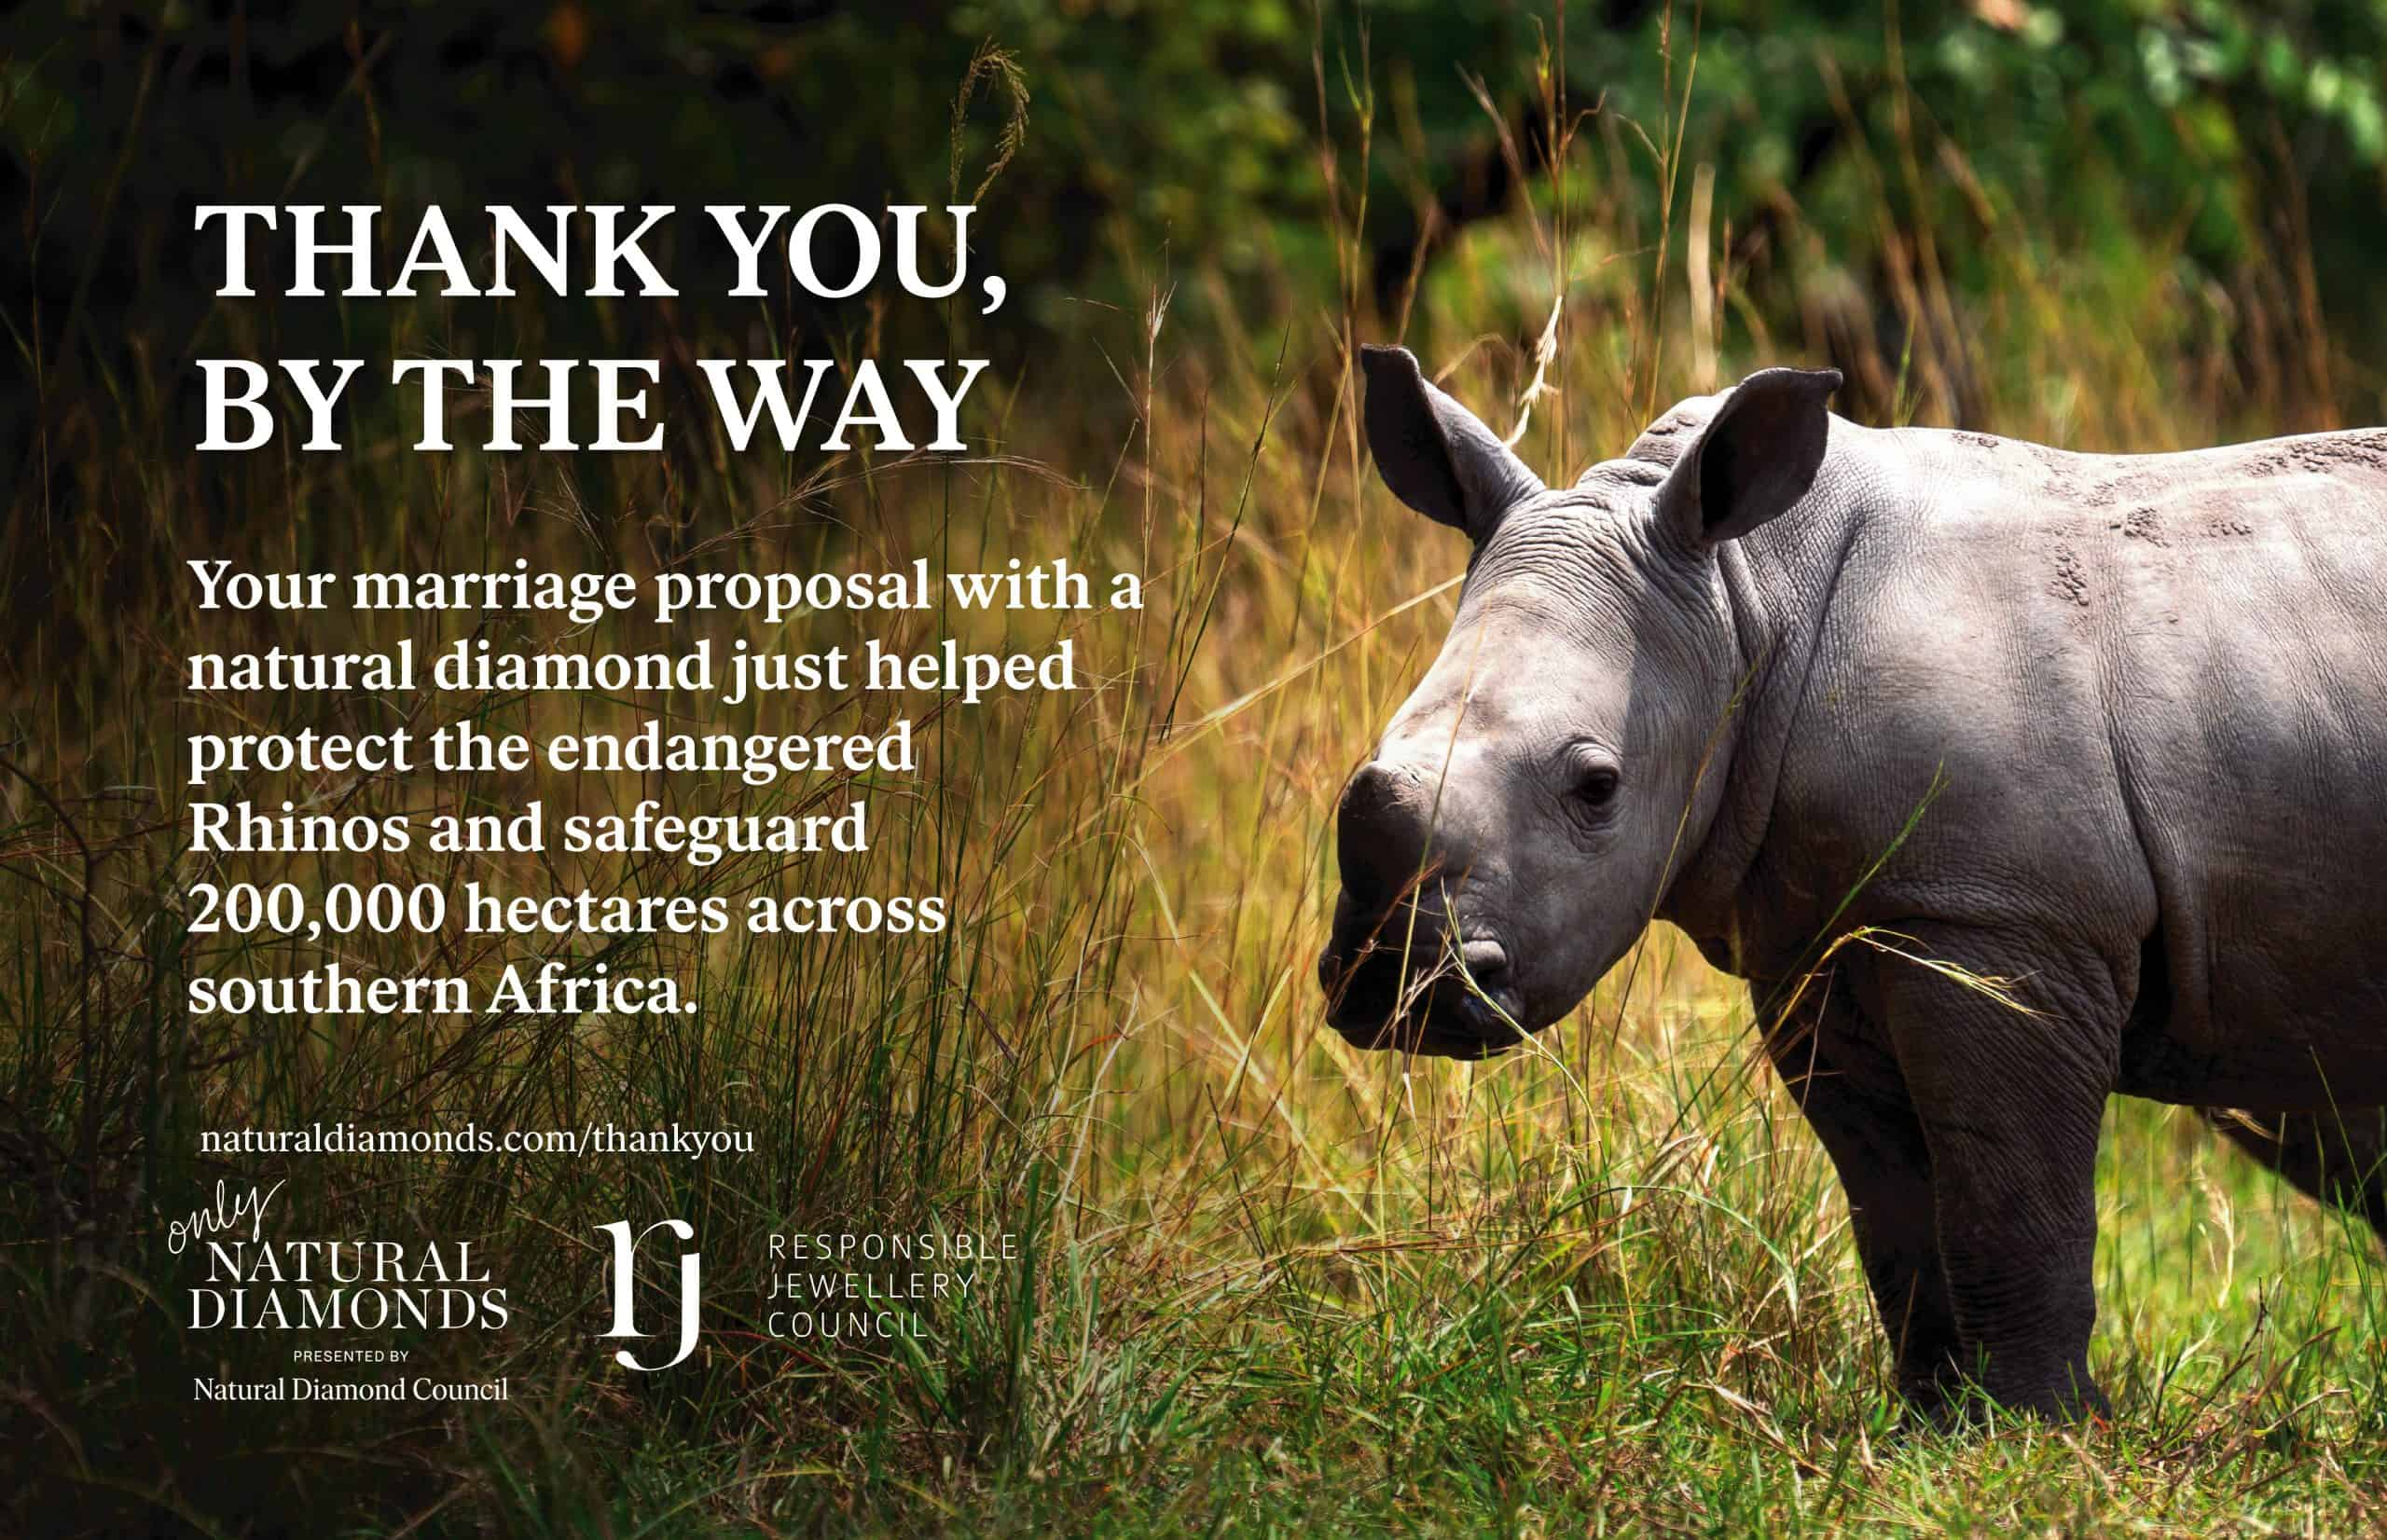 NDC  Thank you_supporting endangered species